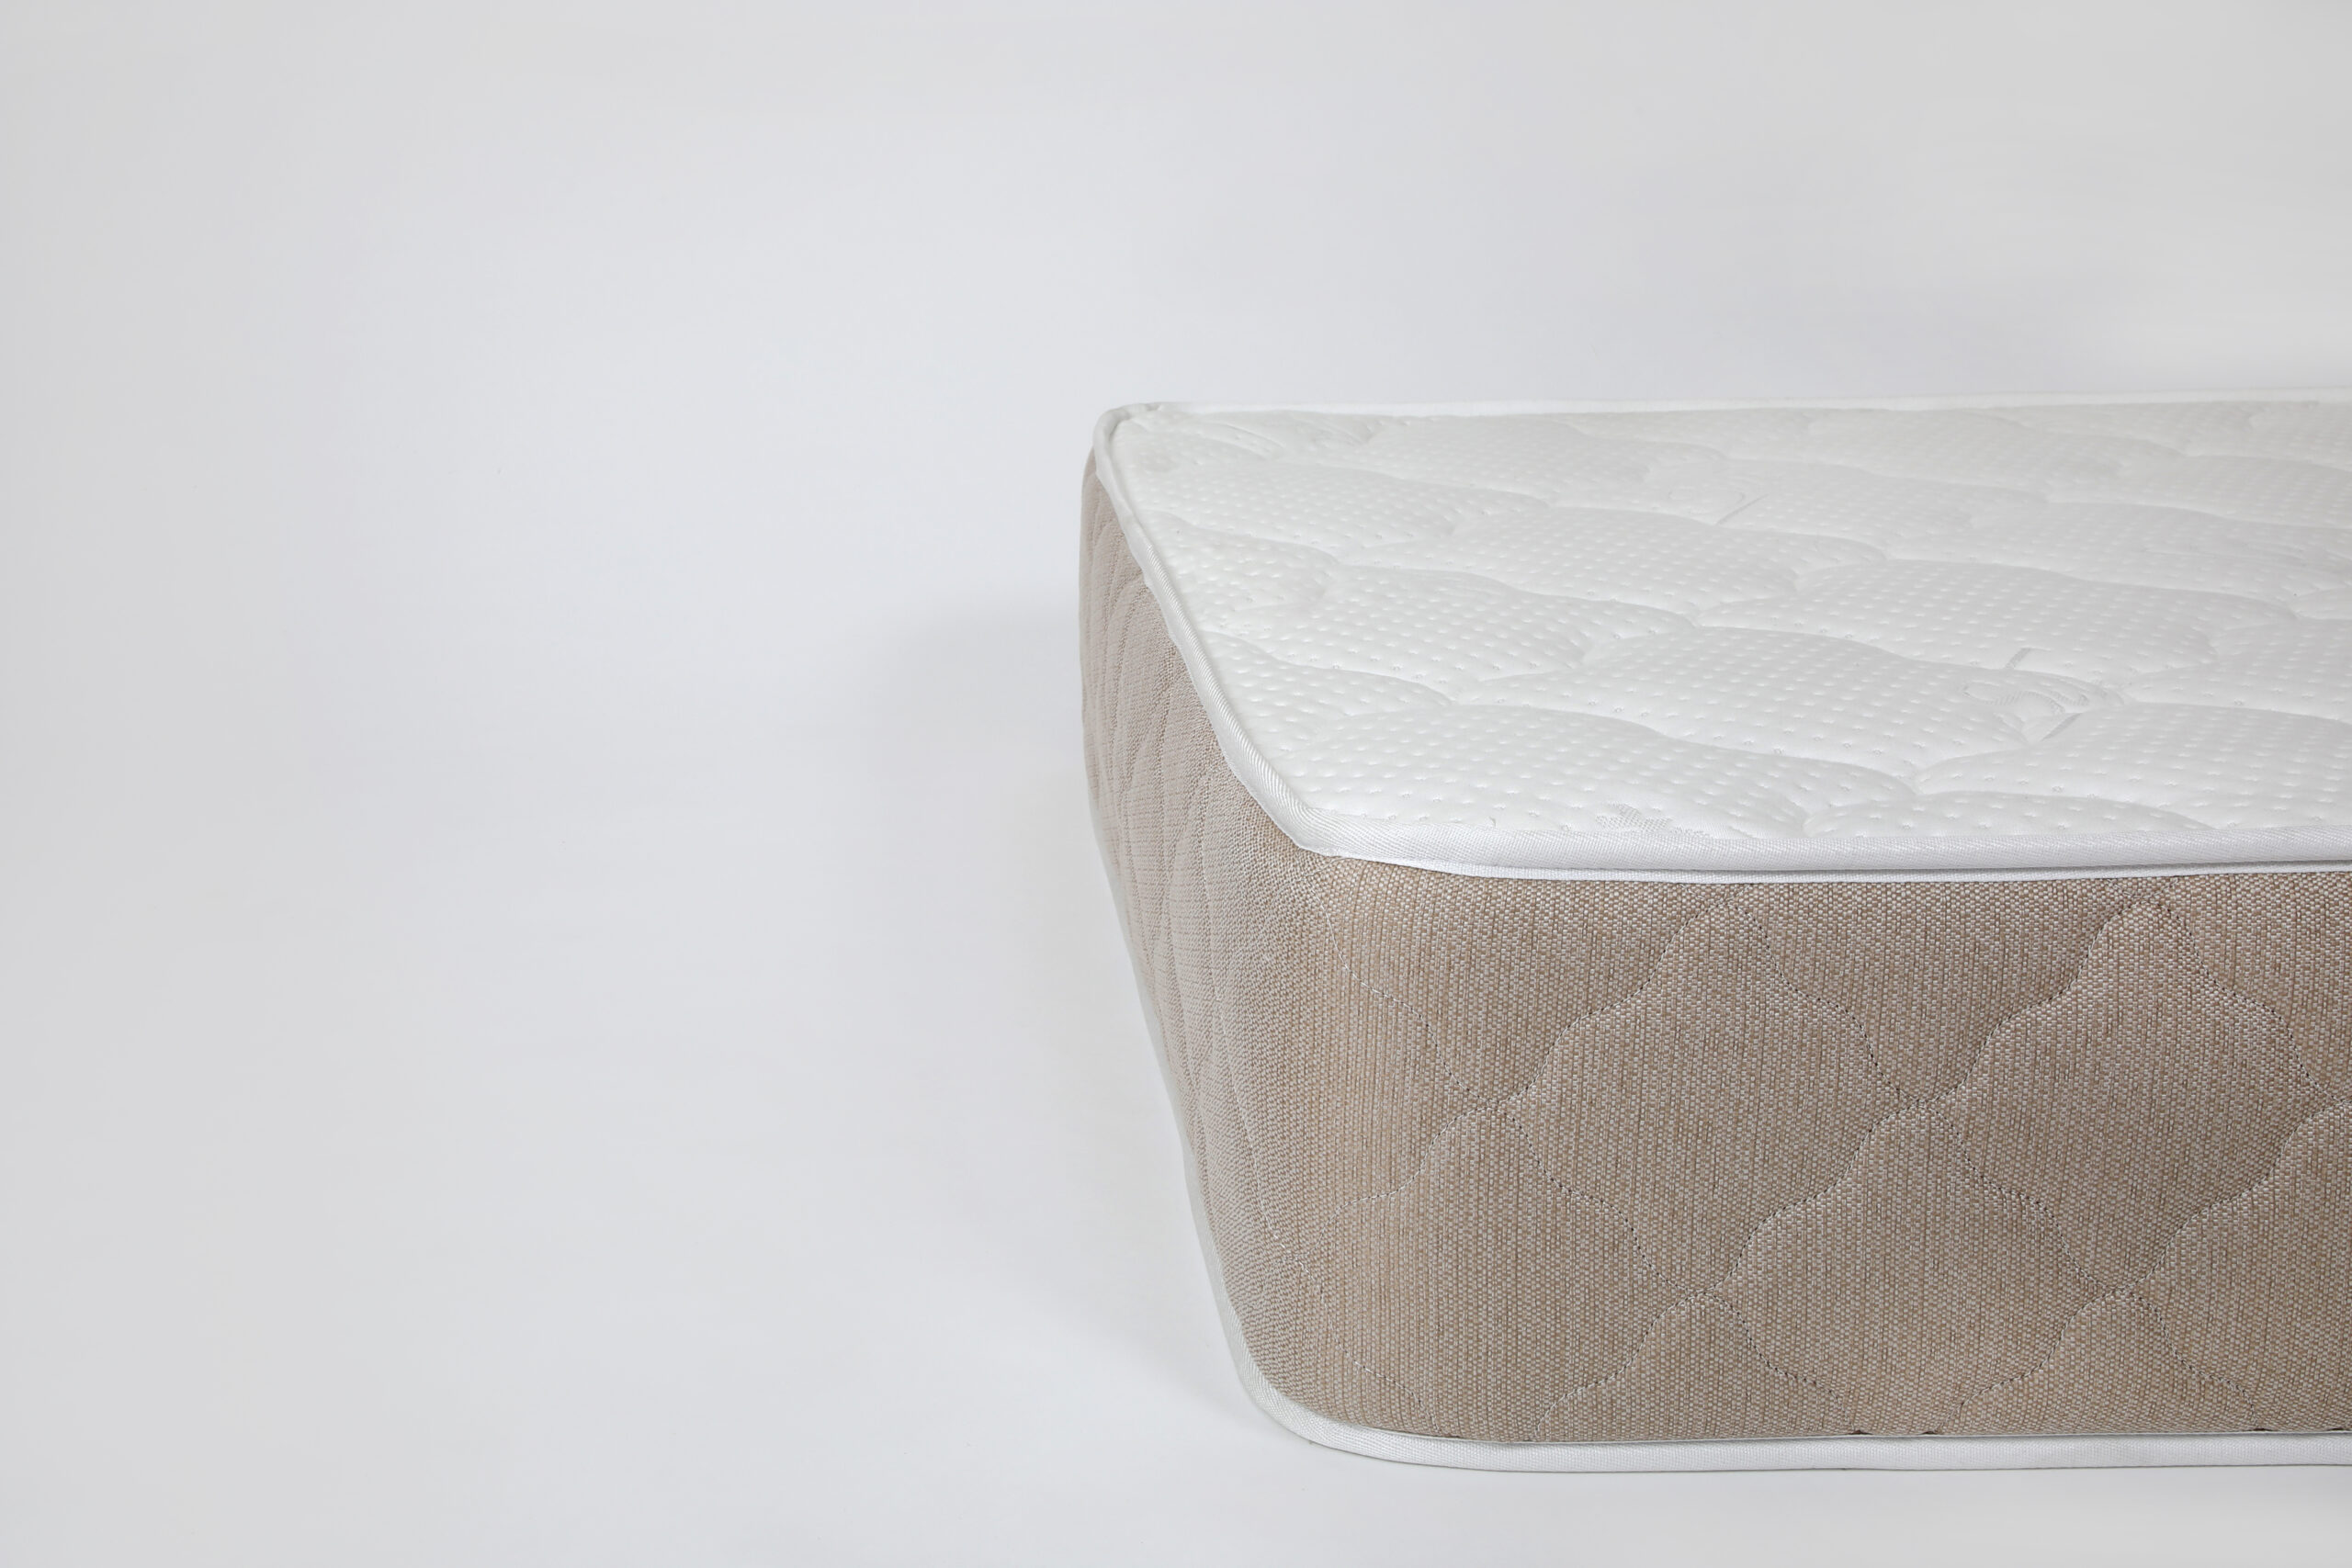 Ideal mattress by NAM House of sleep (picture 1)